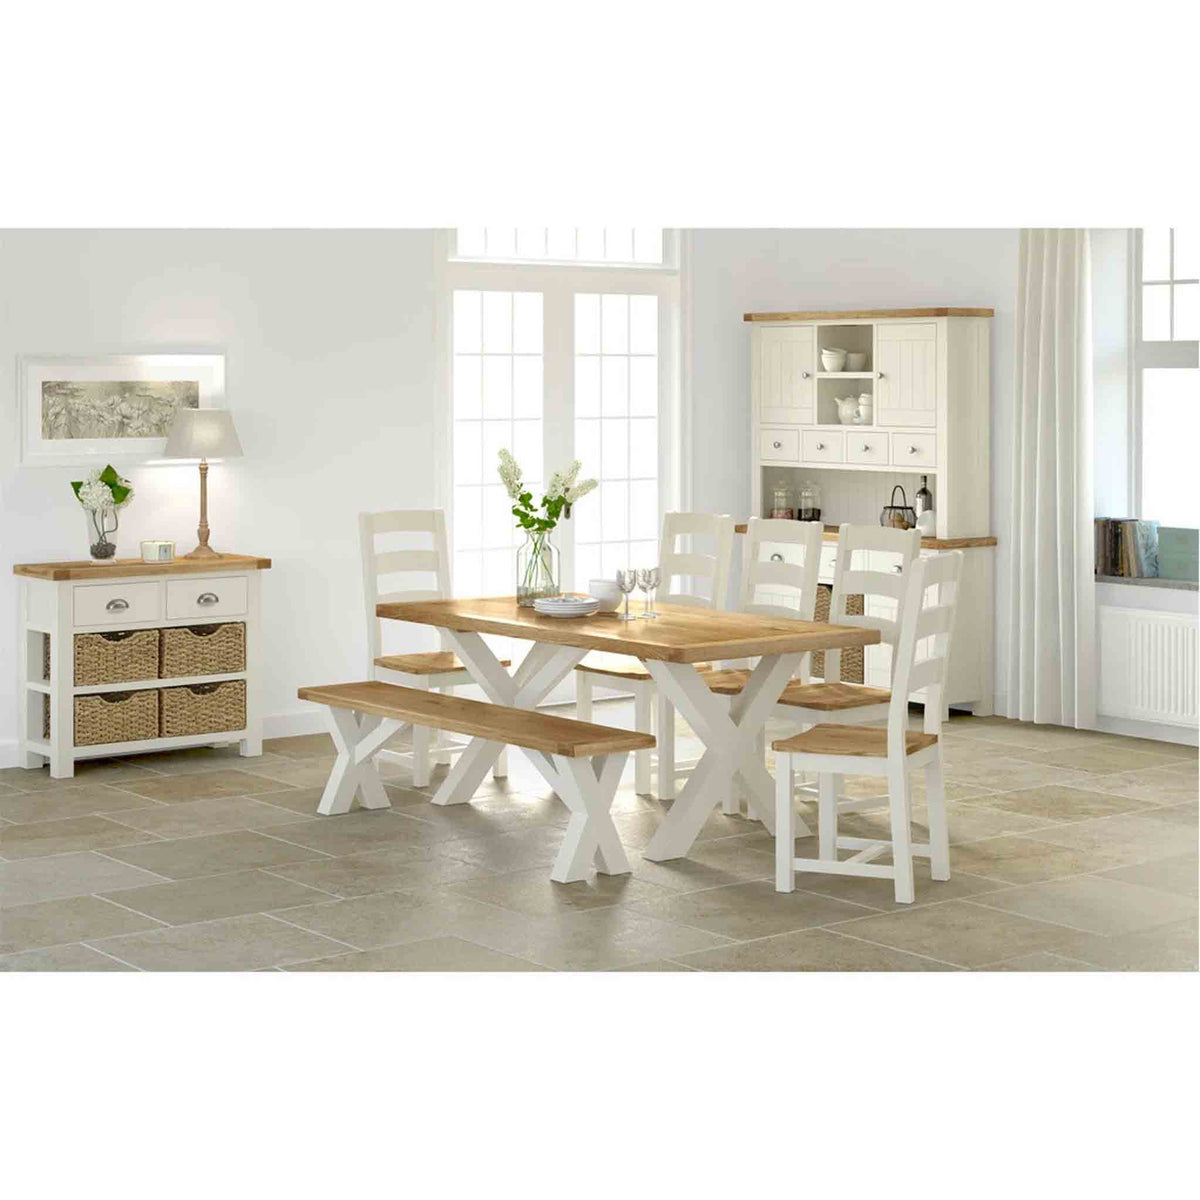 Decorative image with The Daymer Cream Slatted Oak Seat Dining Chair